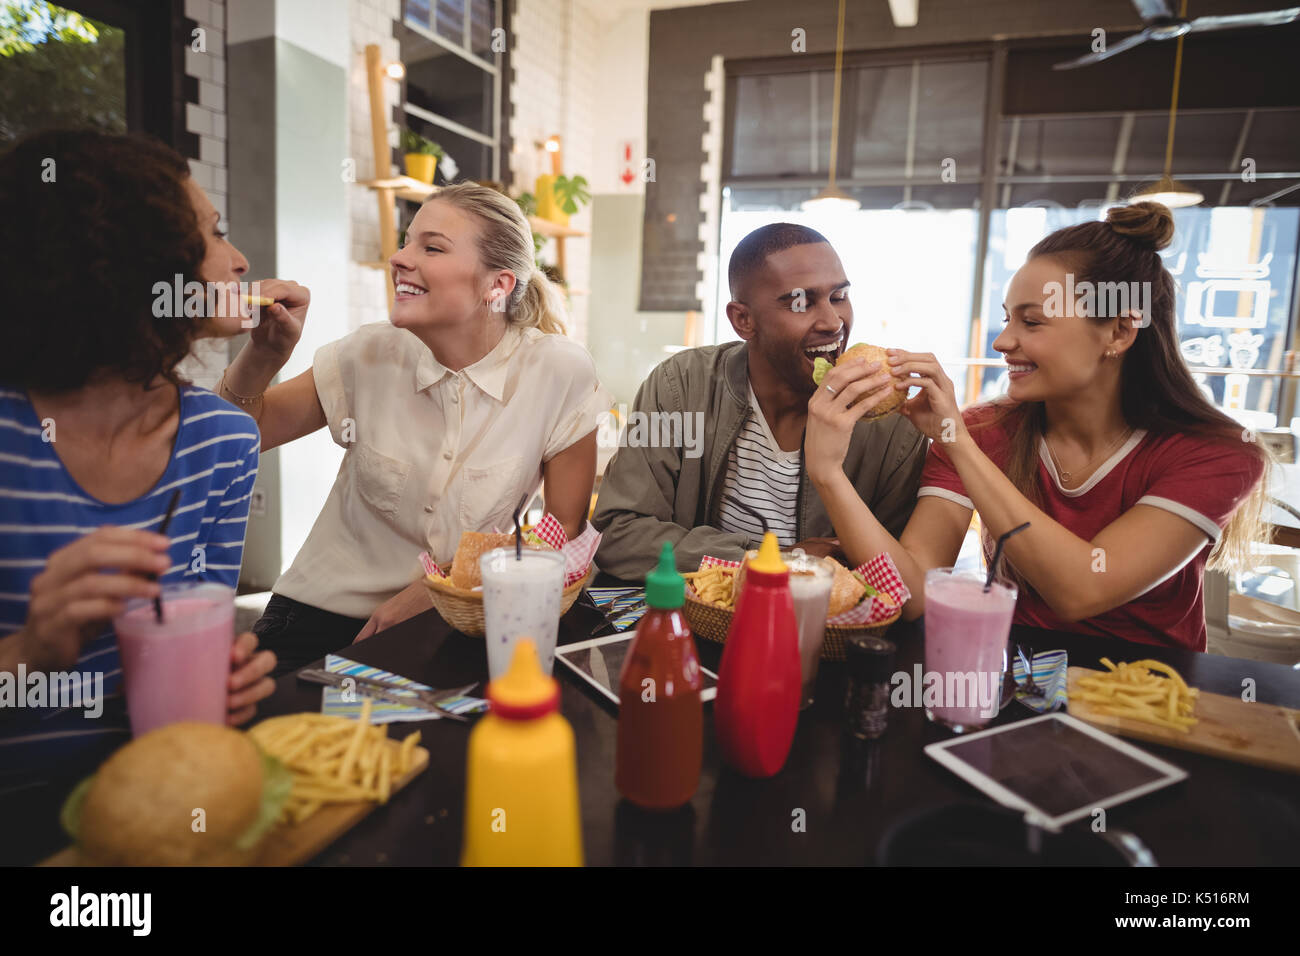 Young friends sharing food at table in coffee shop Stock Photo